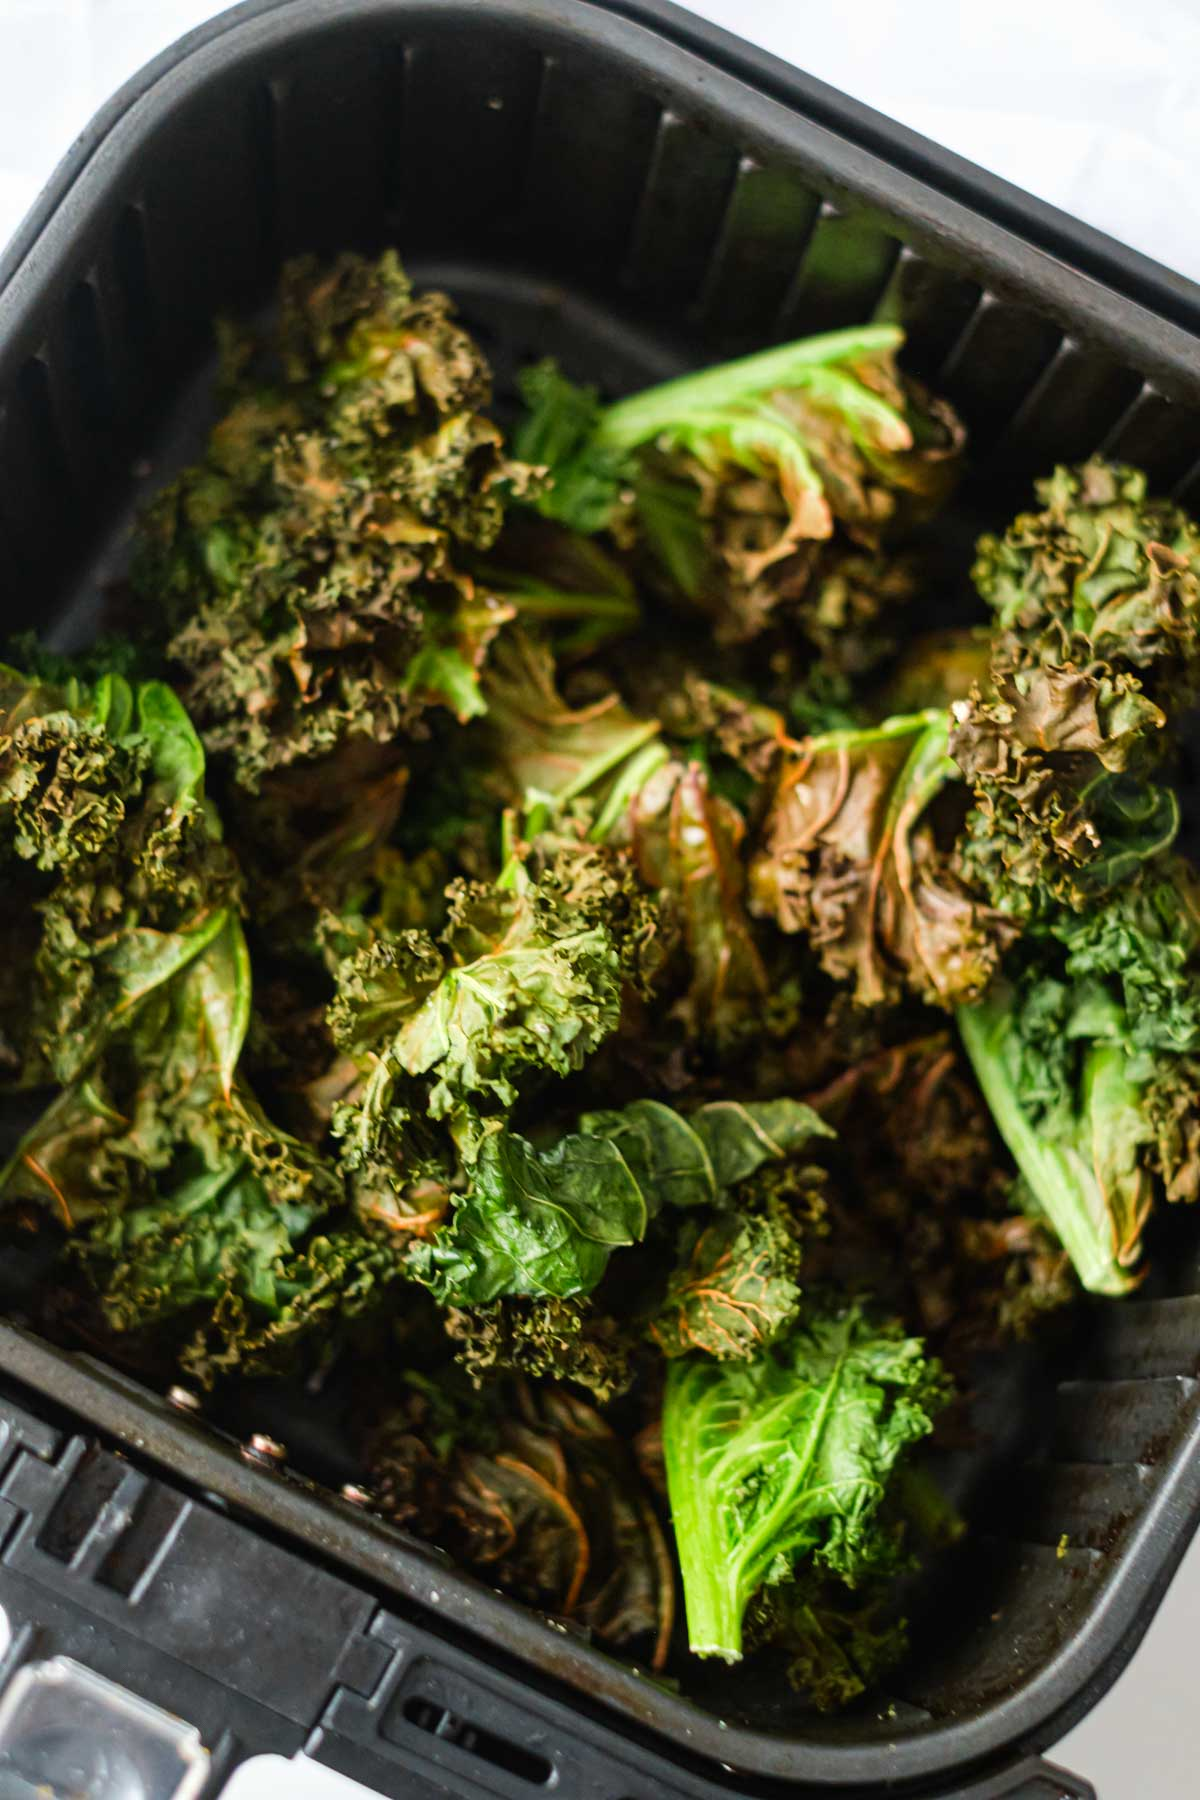 top down view of the cooked air fryer kale chips inside the air fryer basket